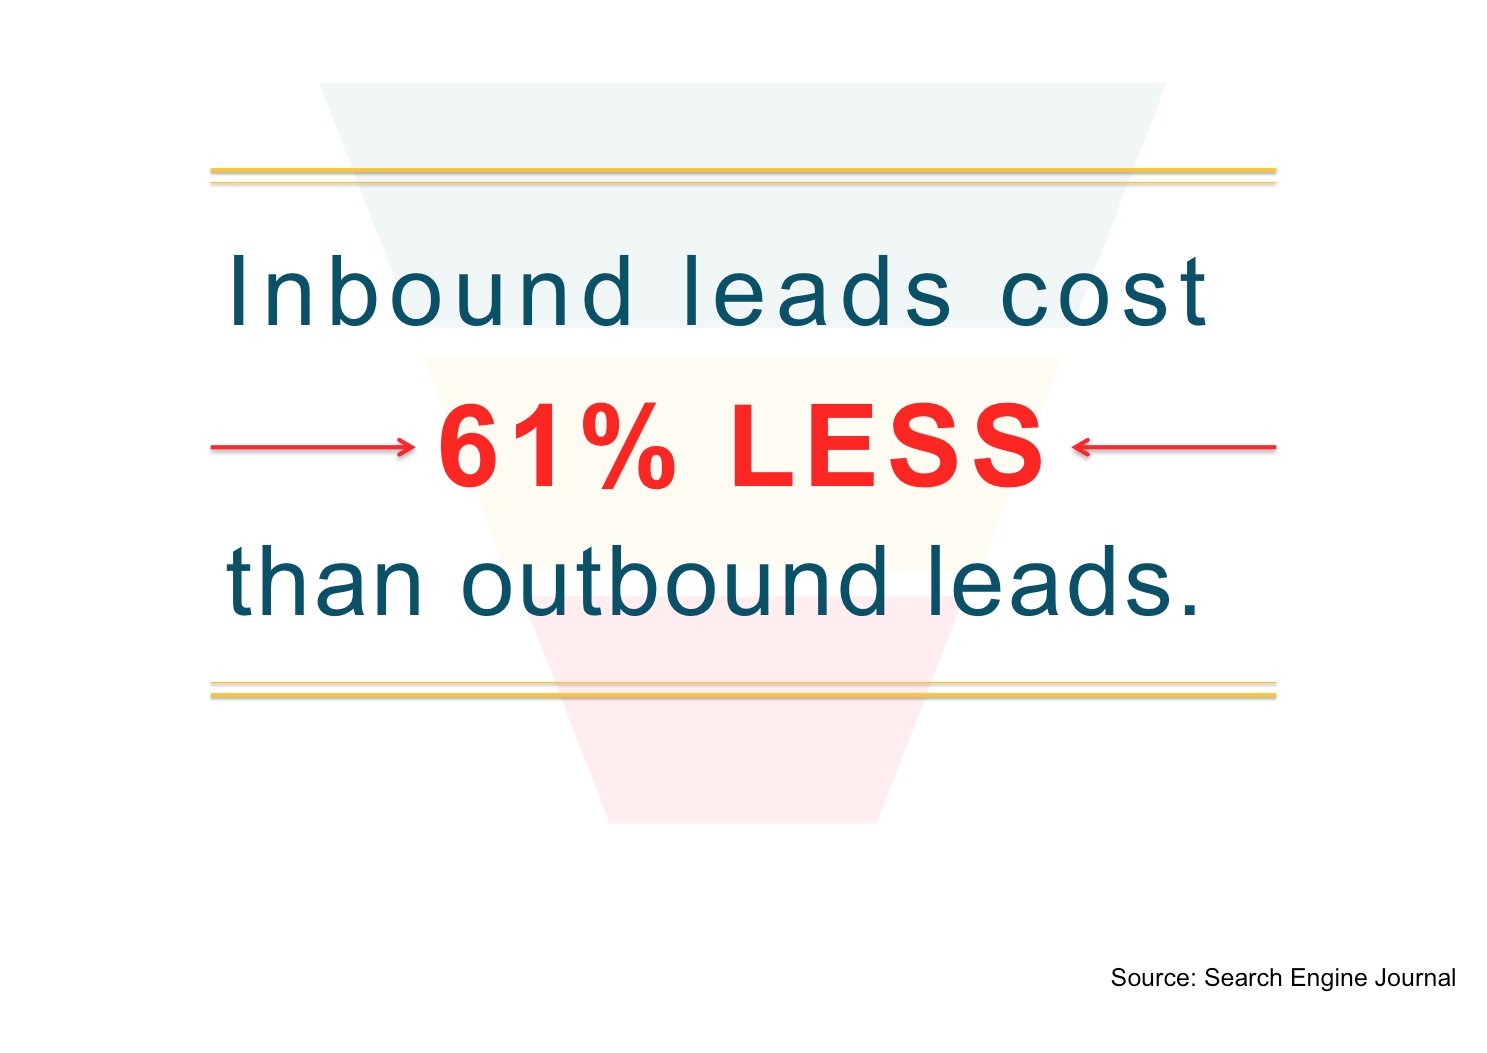 inbound_leads_cost_61_percent_less